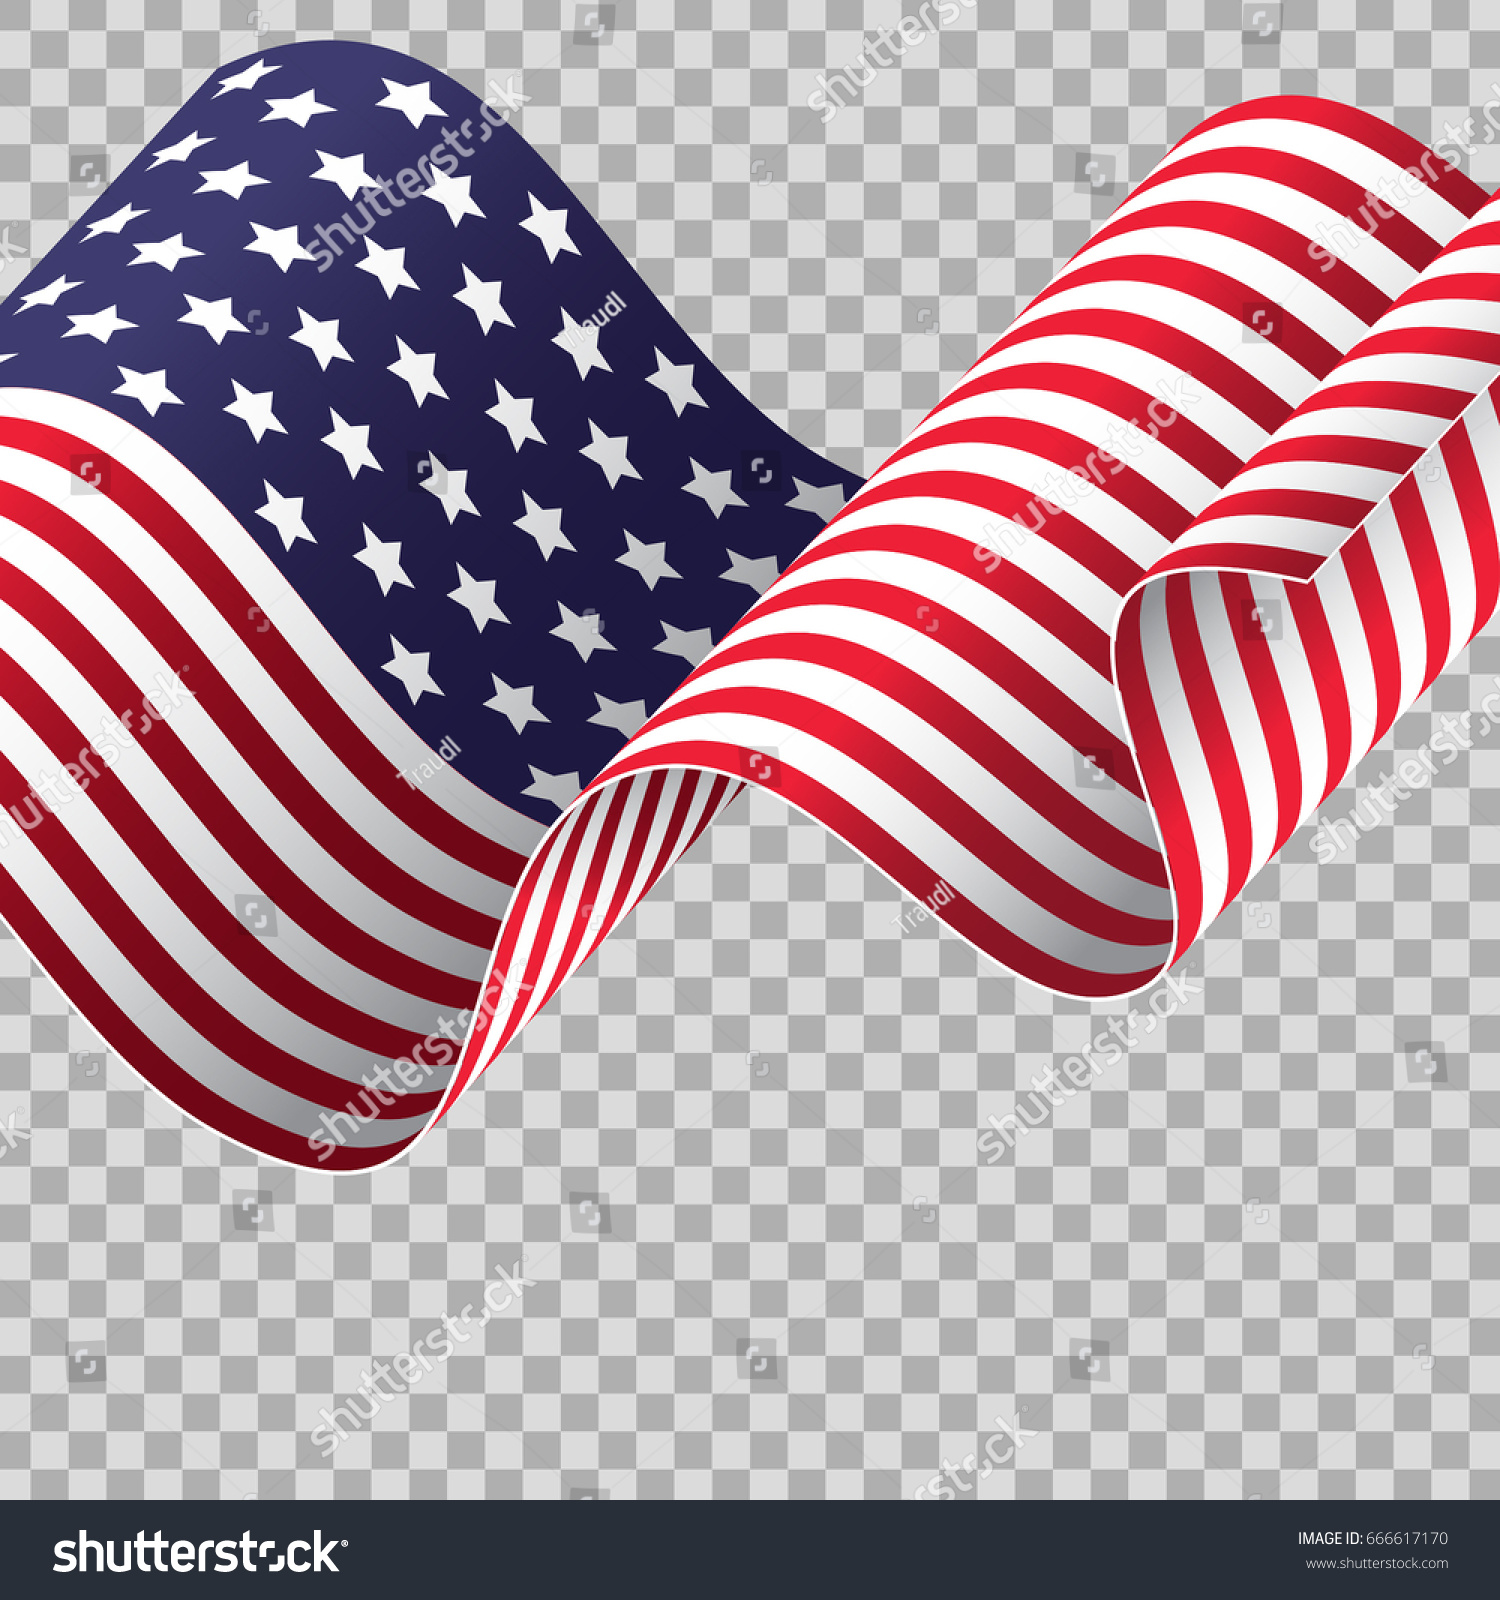 hight resolution of waving american flag on transparent background patriotic holidays suitable independence day memorial day